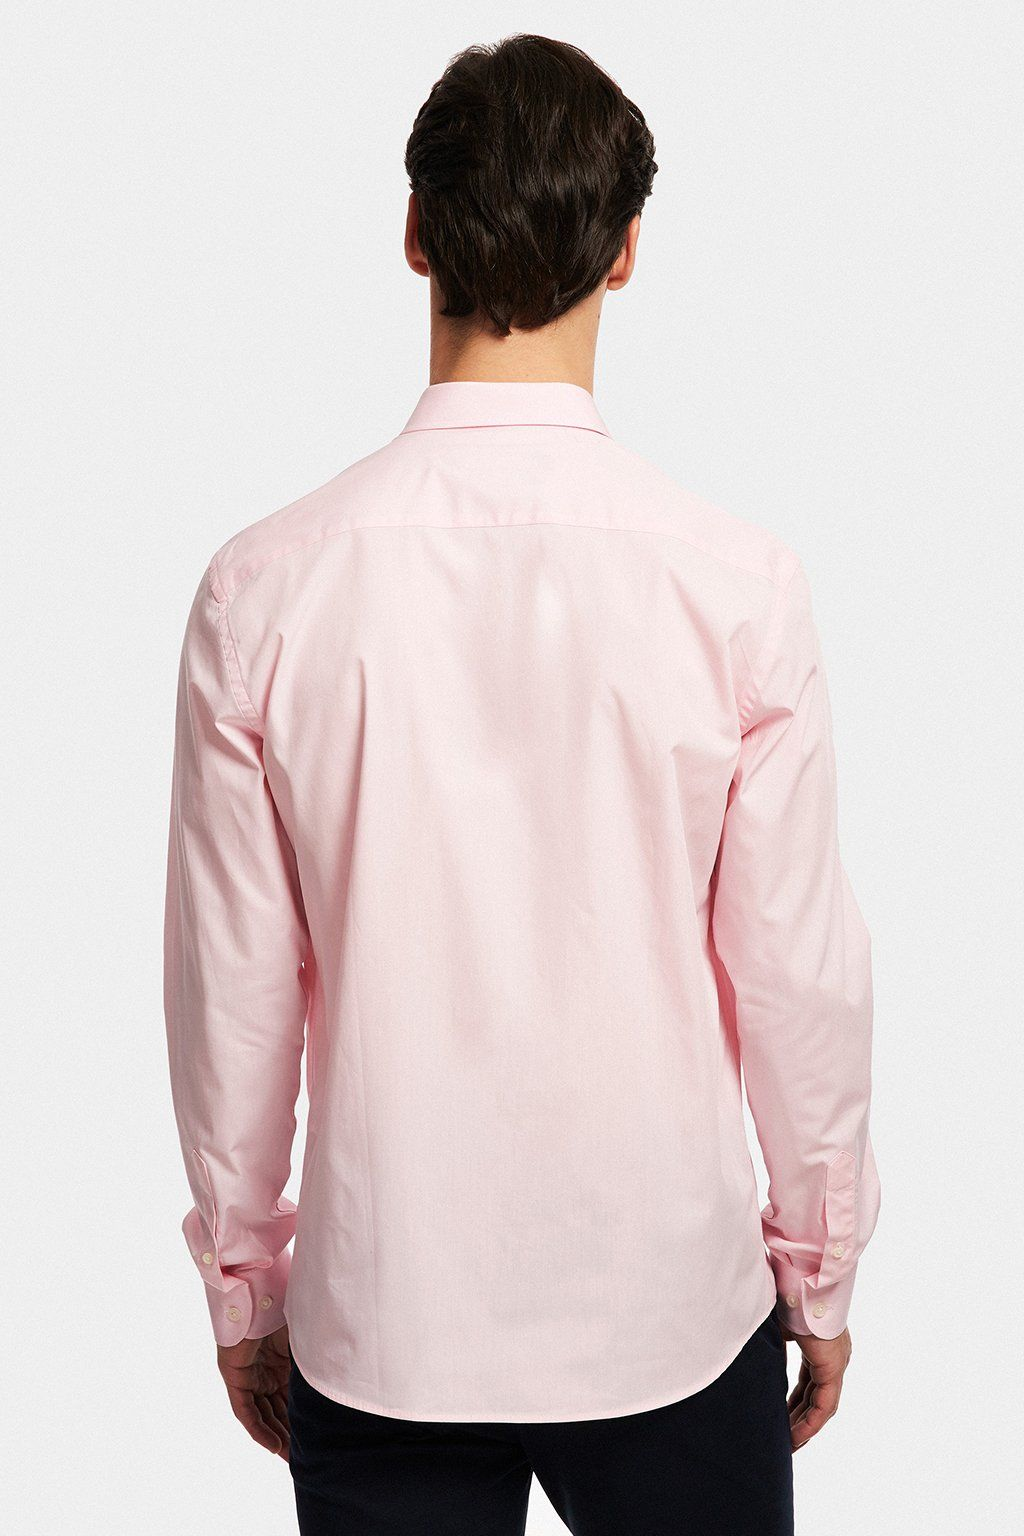 MINI RIGBY POPELIN pink Shirt